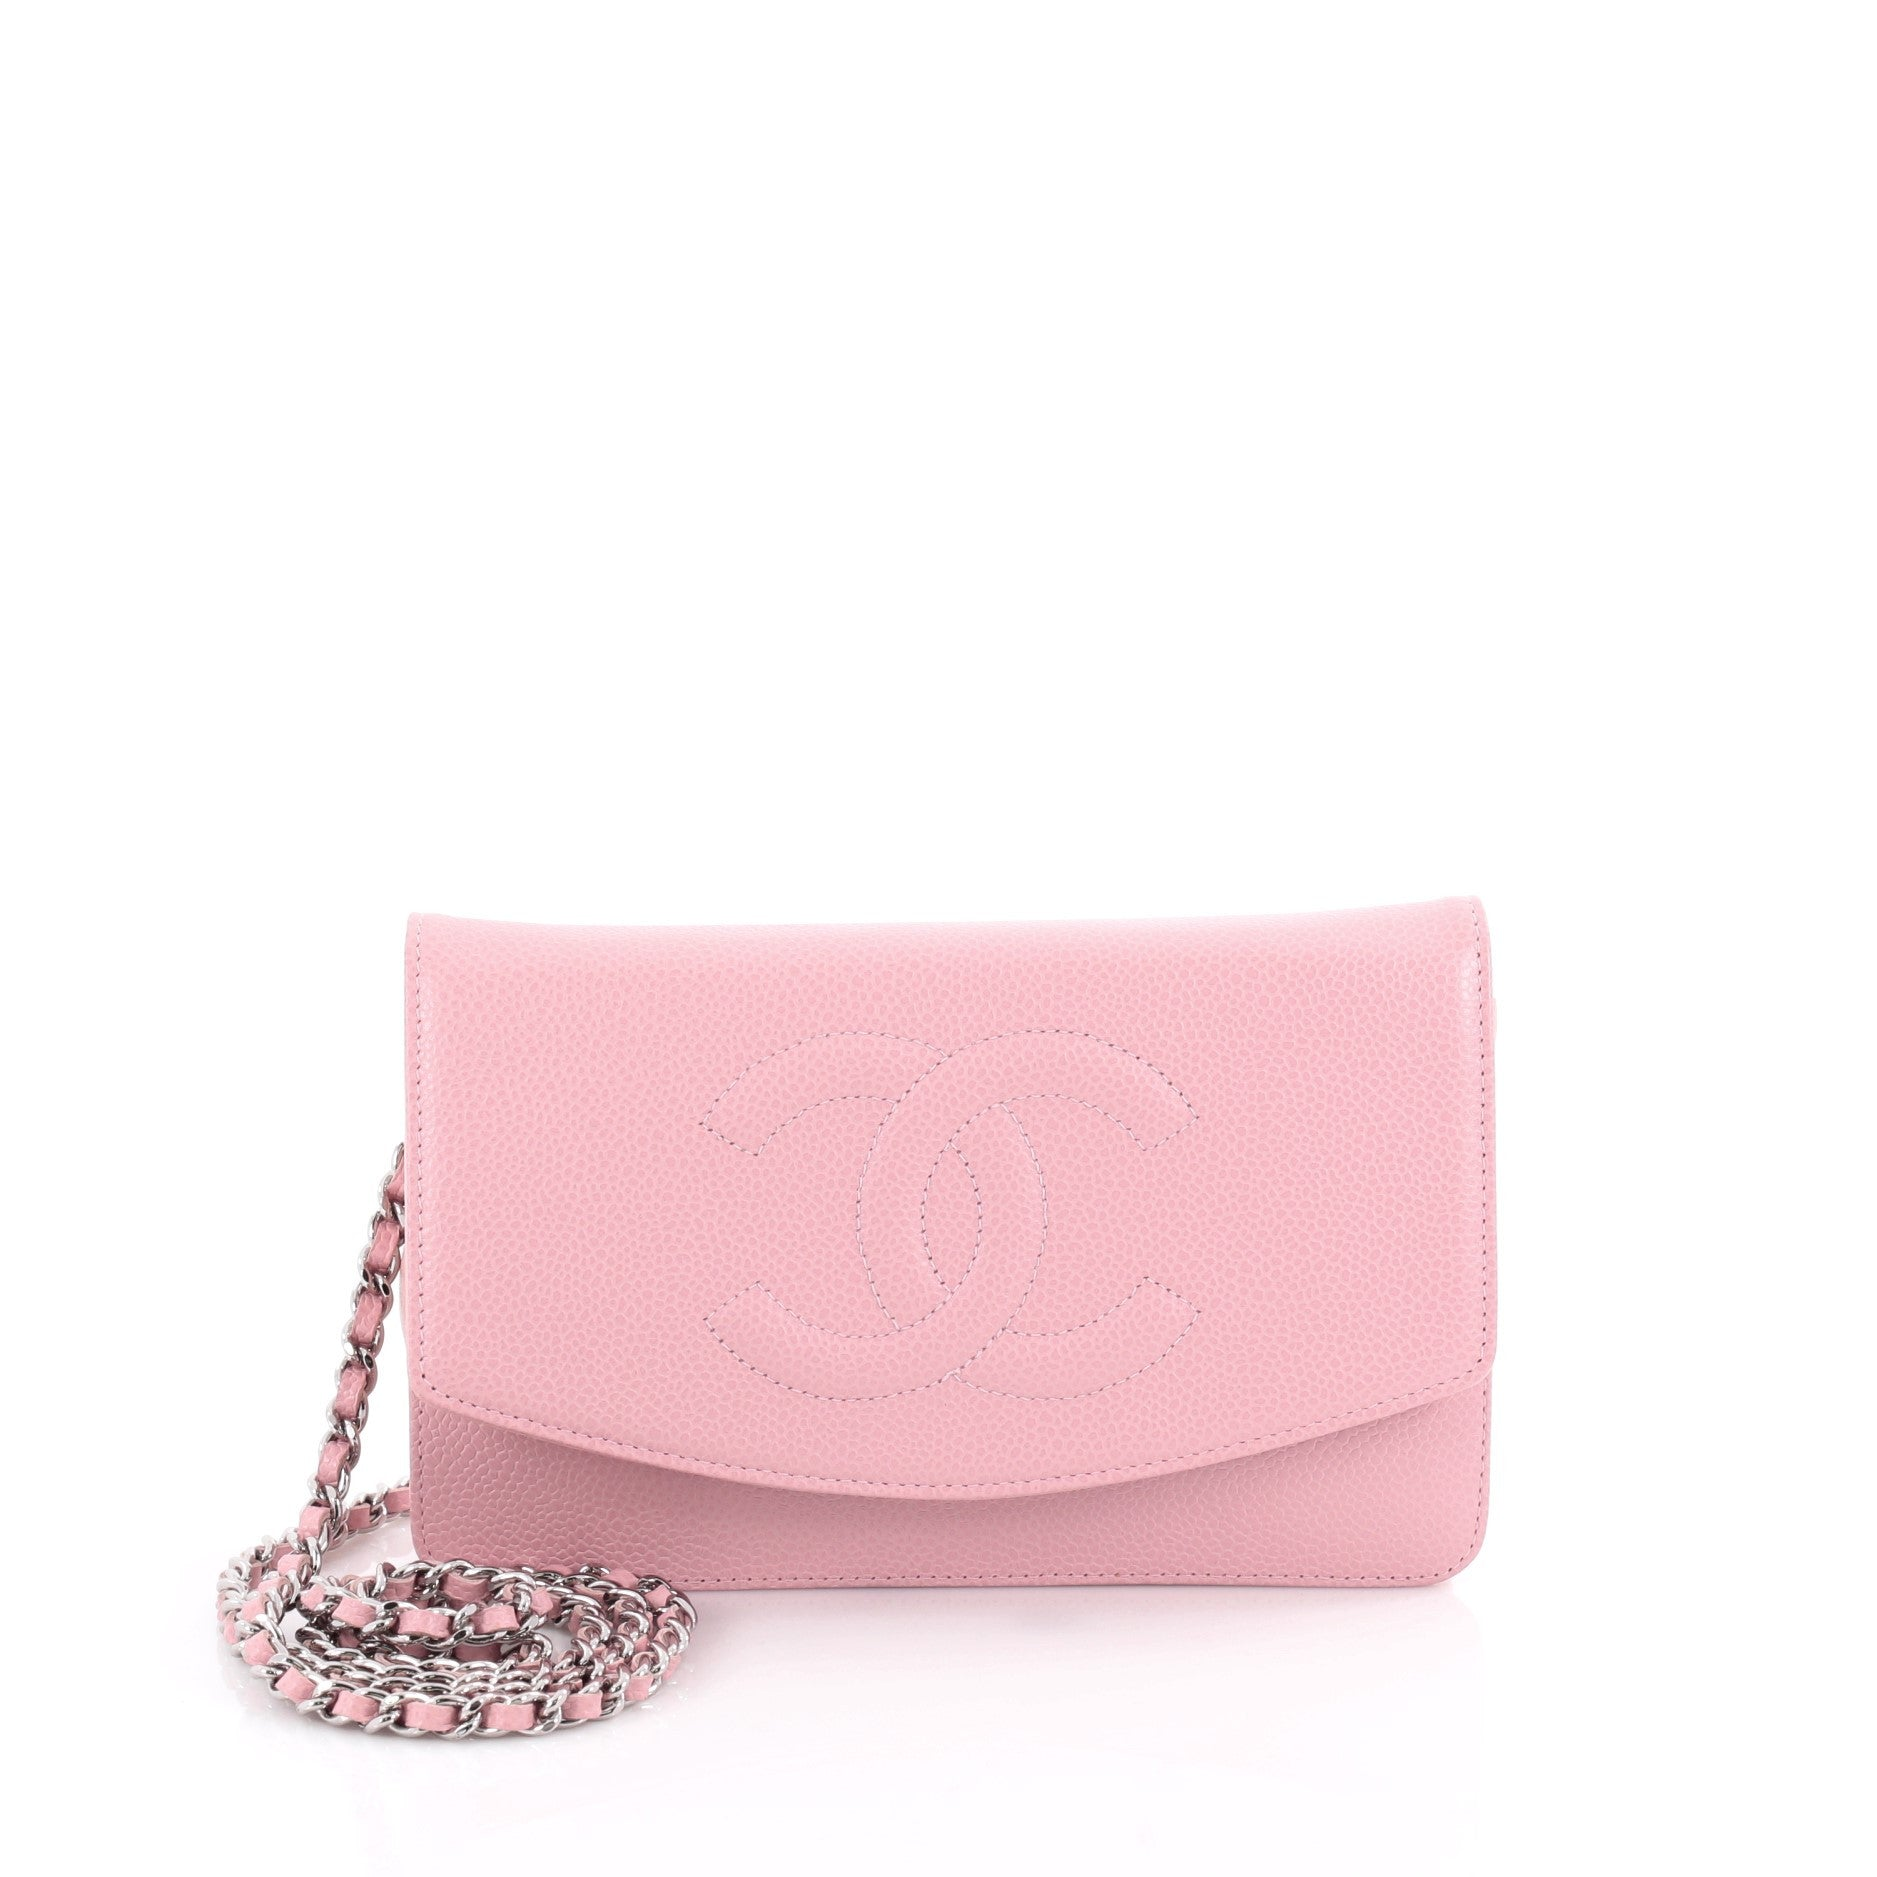 d4e1dd2ae518 20835-02_Chanel_Vintage_Timeless_Wallet_on_Chain_C_2D_0003.jpg?v=1499781471